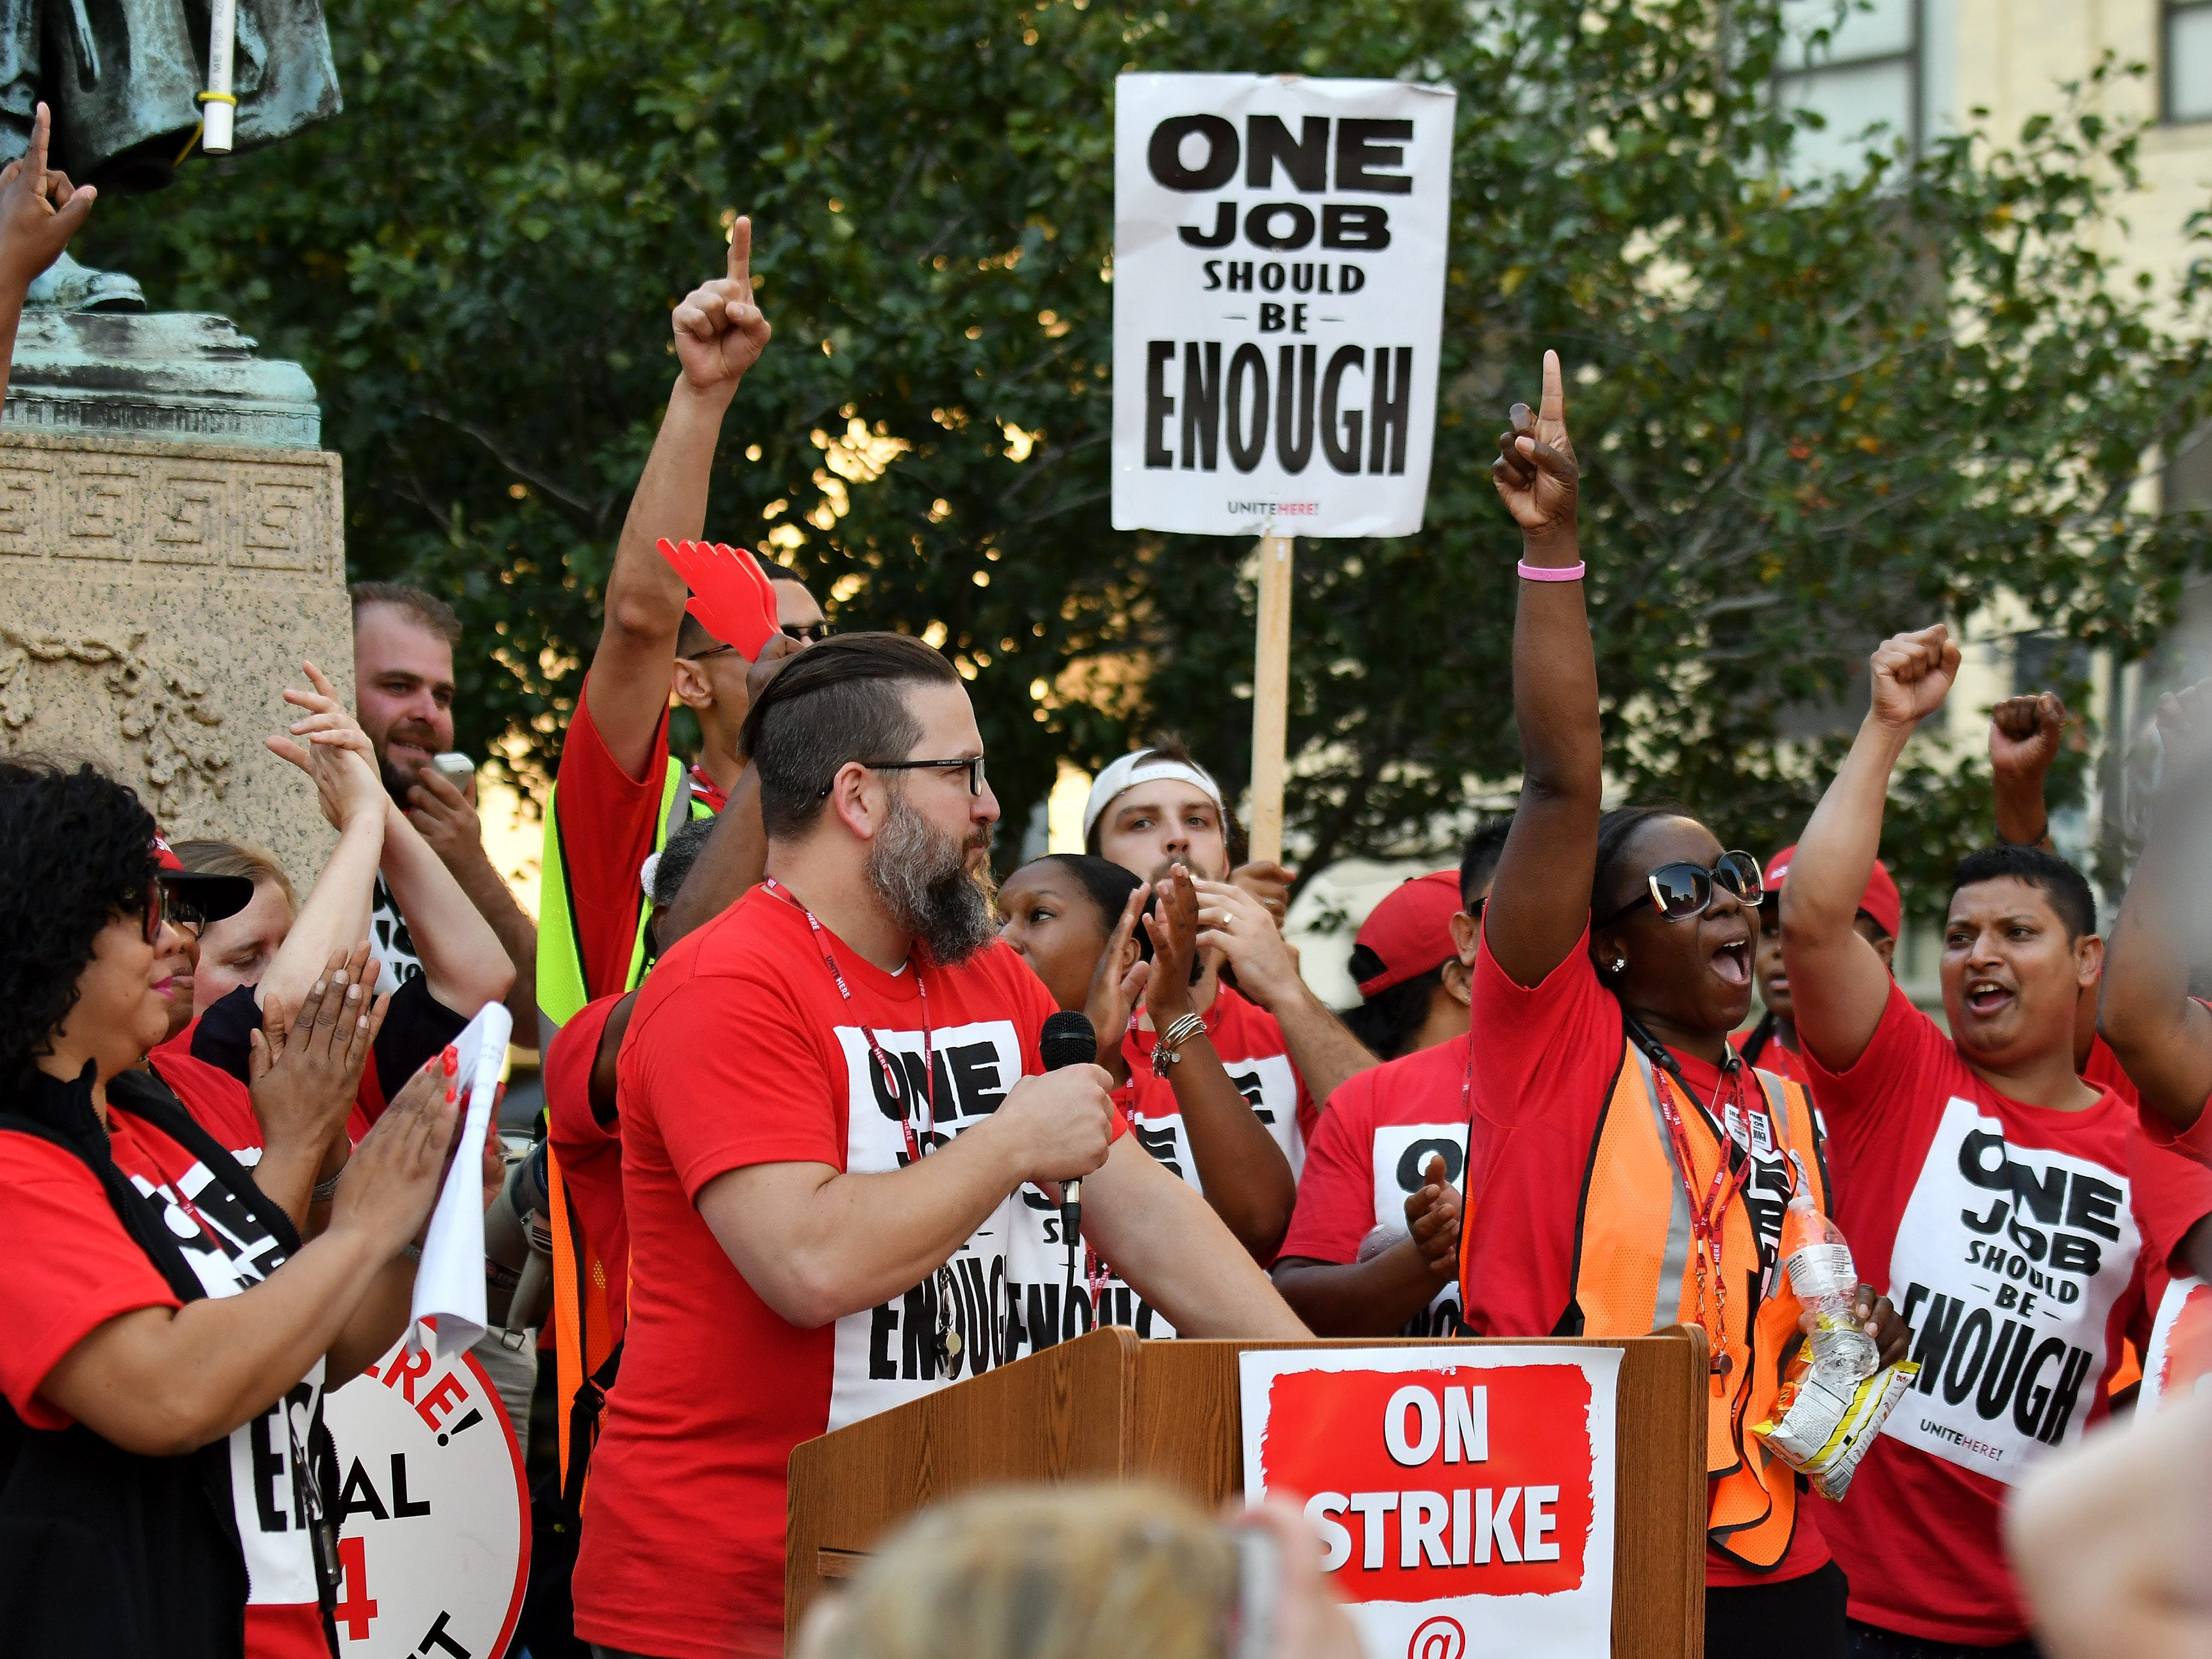 Yolanda Murray of Harper Woods, right, pointing up, and others cheer while Dave Frassetto of Royal Oak, a lead bartender at the Westin Book Cadillac, left, speaks at a rally for and by workers from Unite Here Local 24.